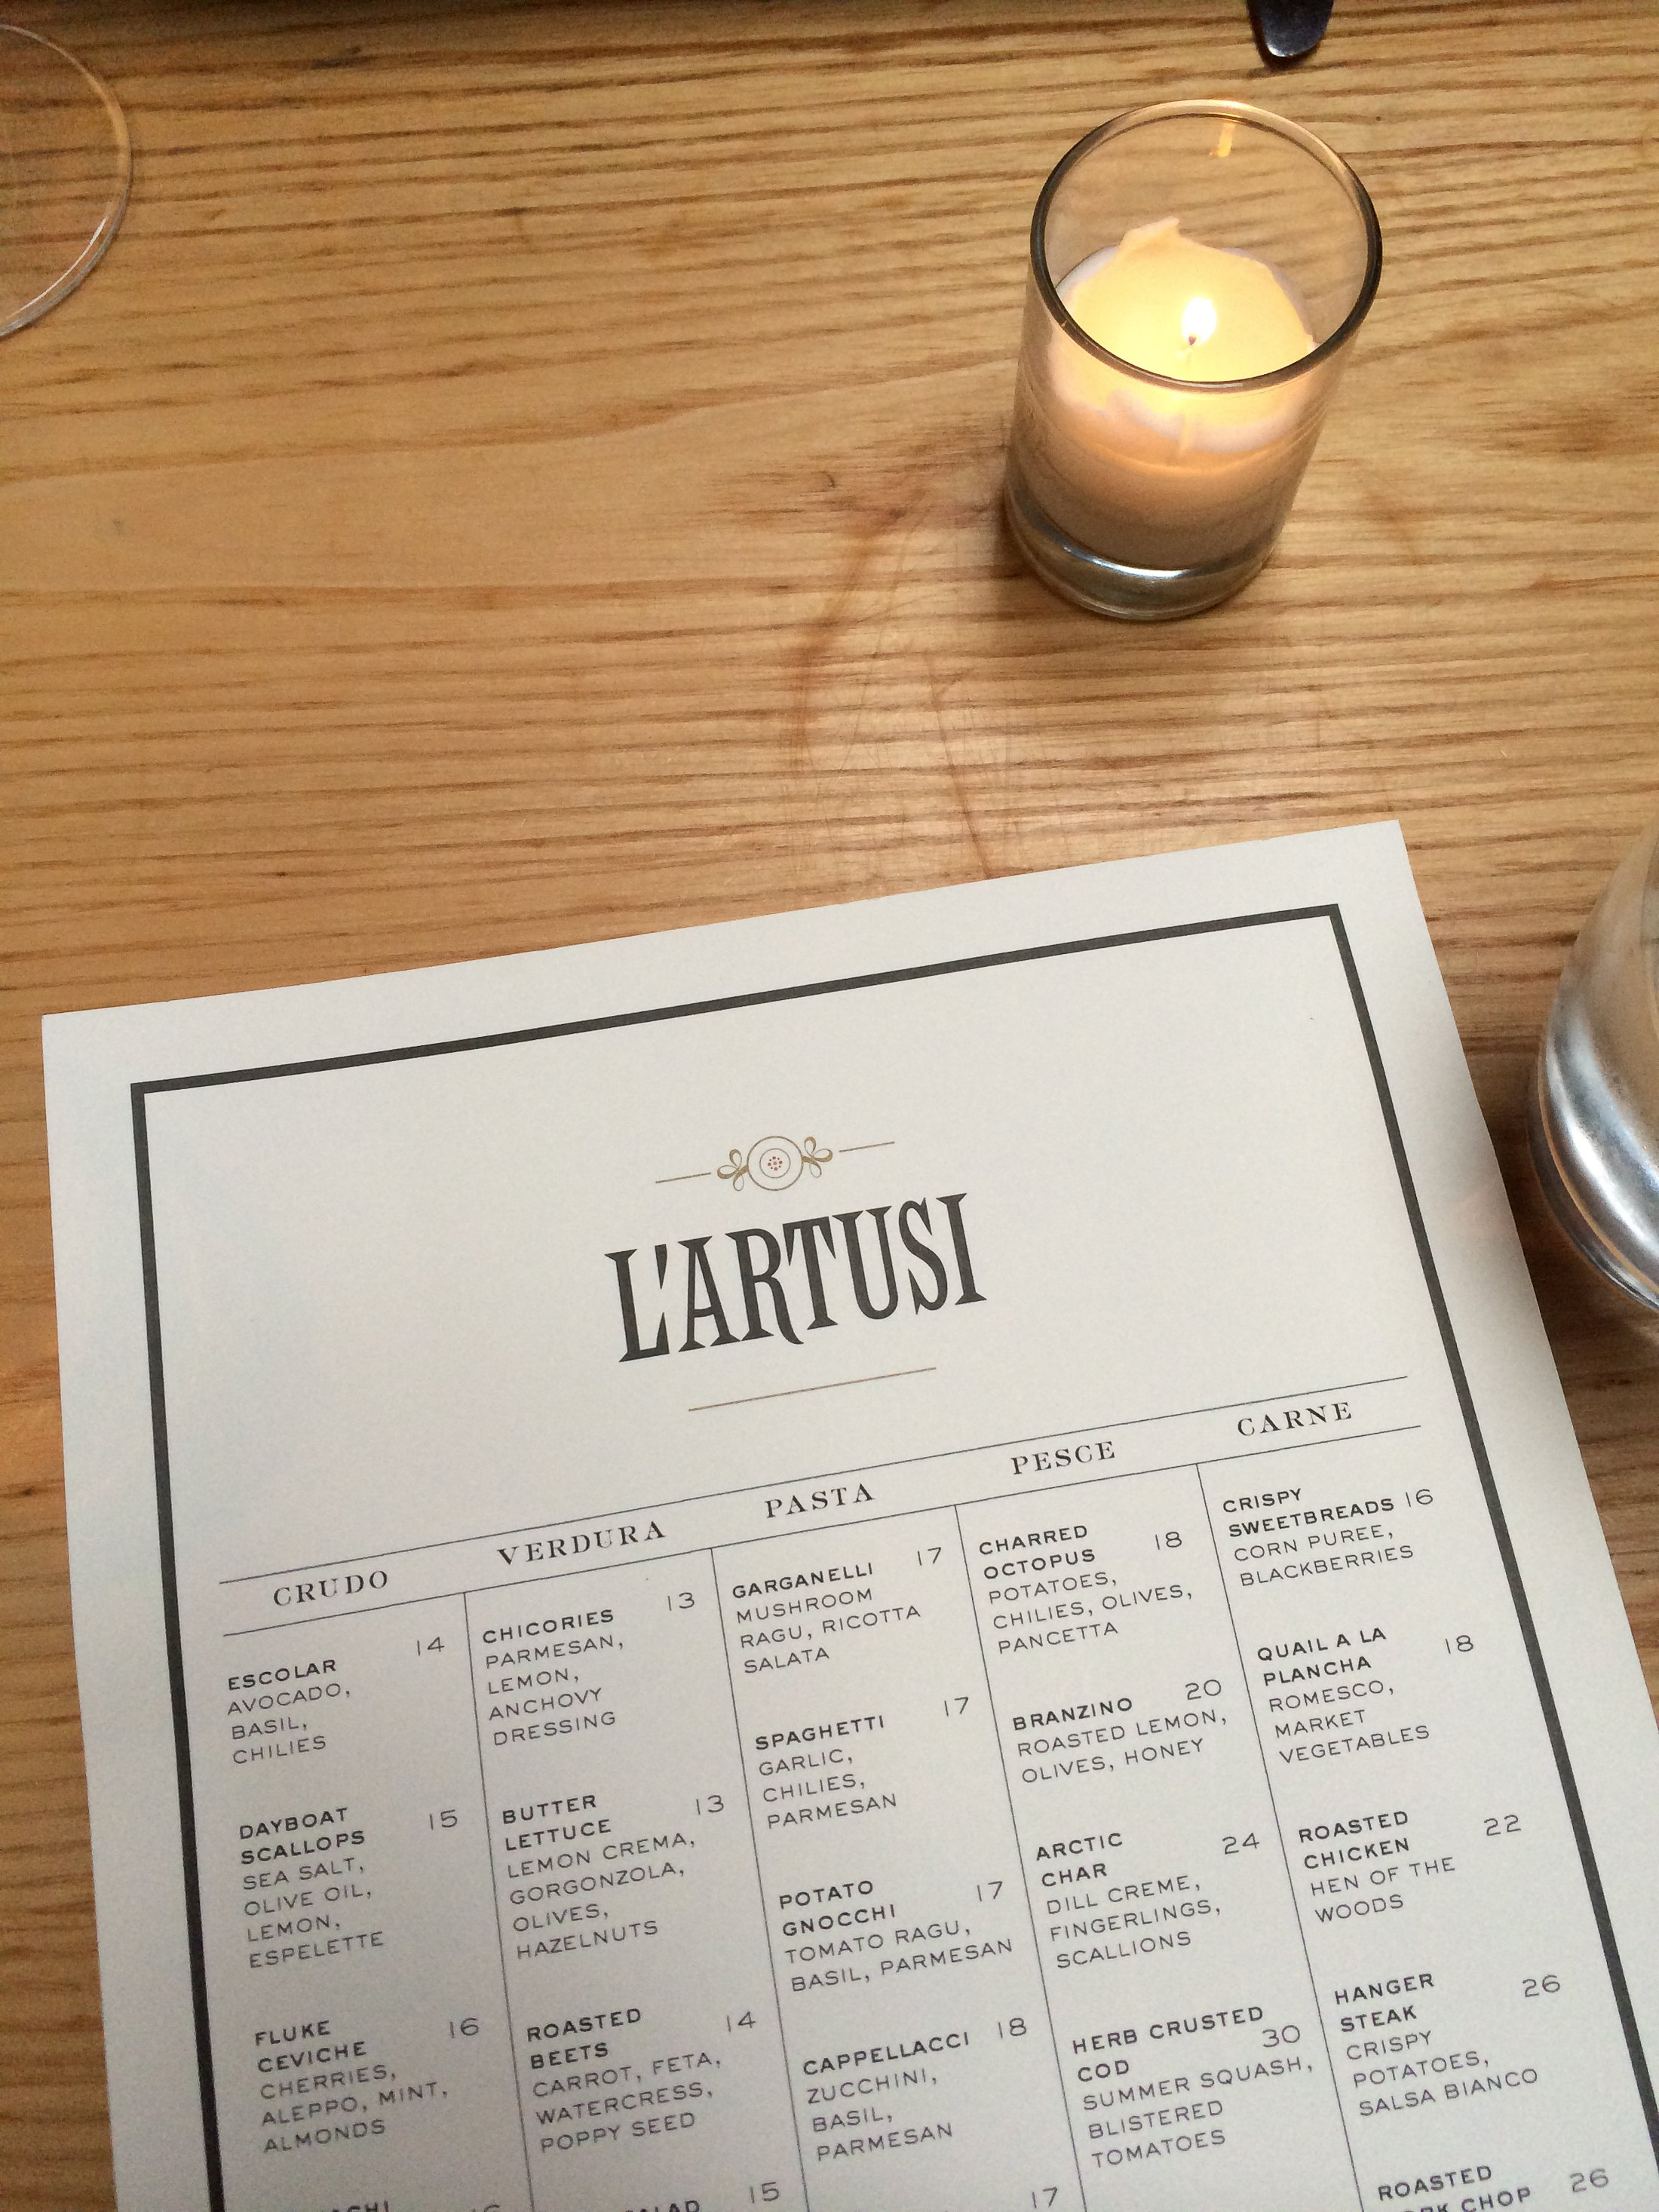 lartusi italian pasta nyc dining food photo shershegoes.com